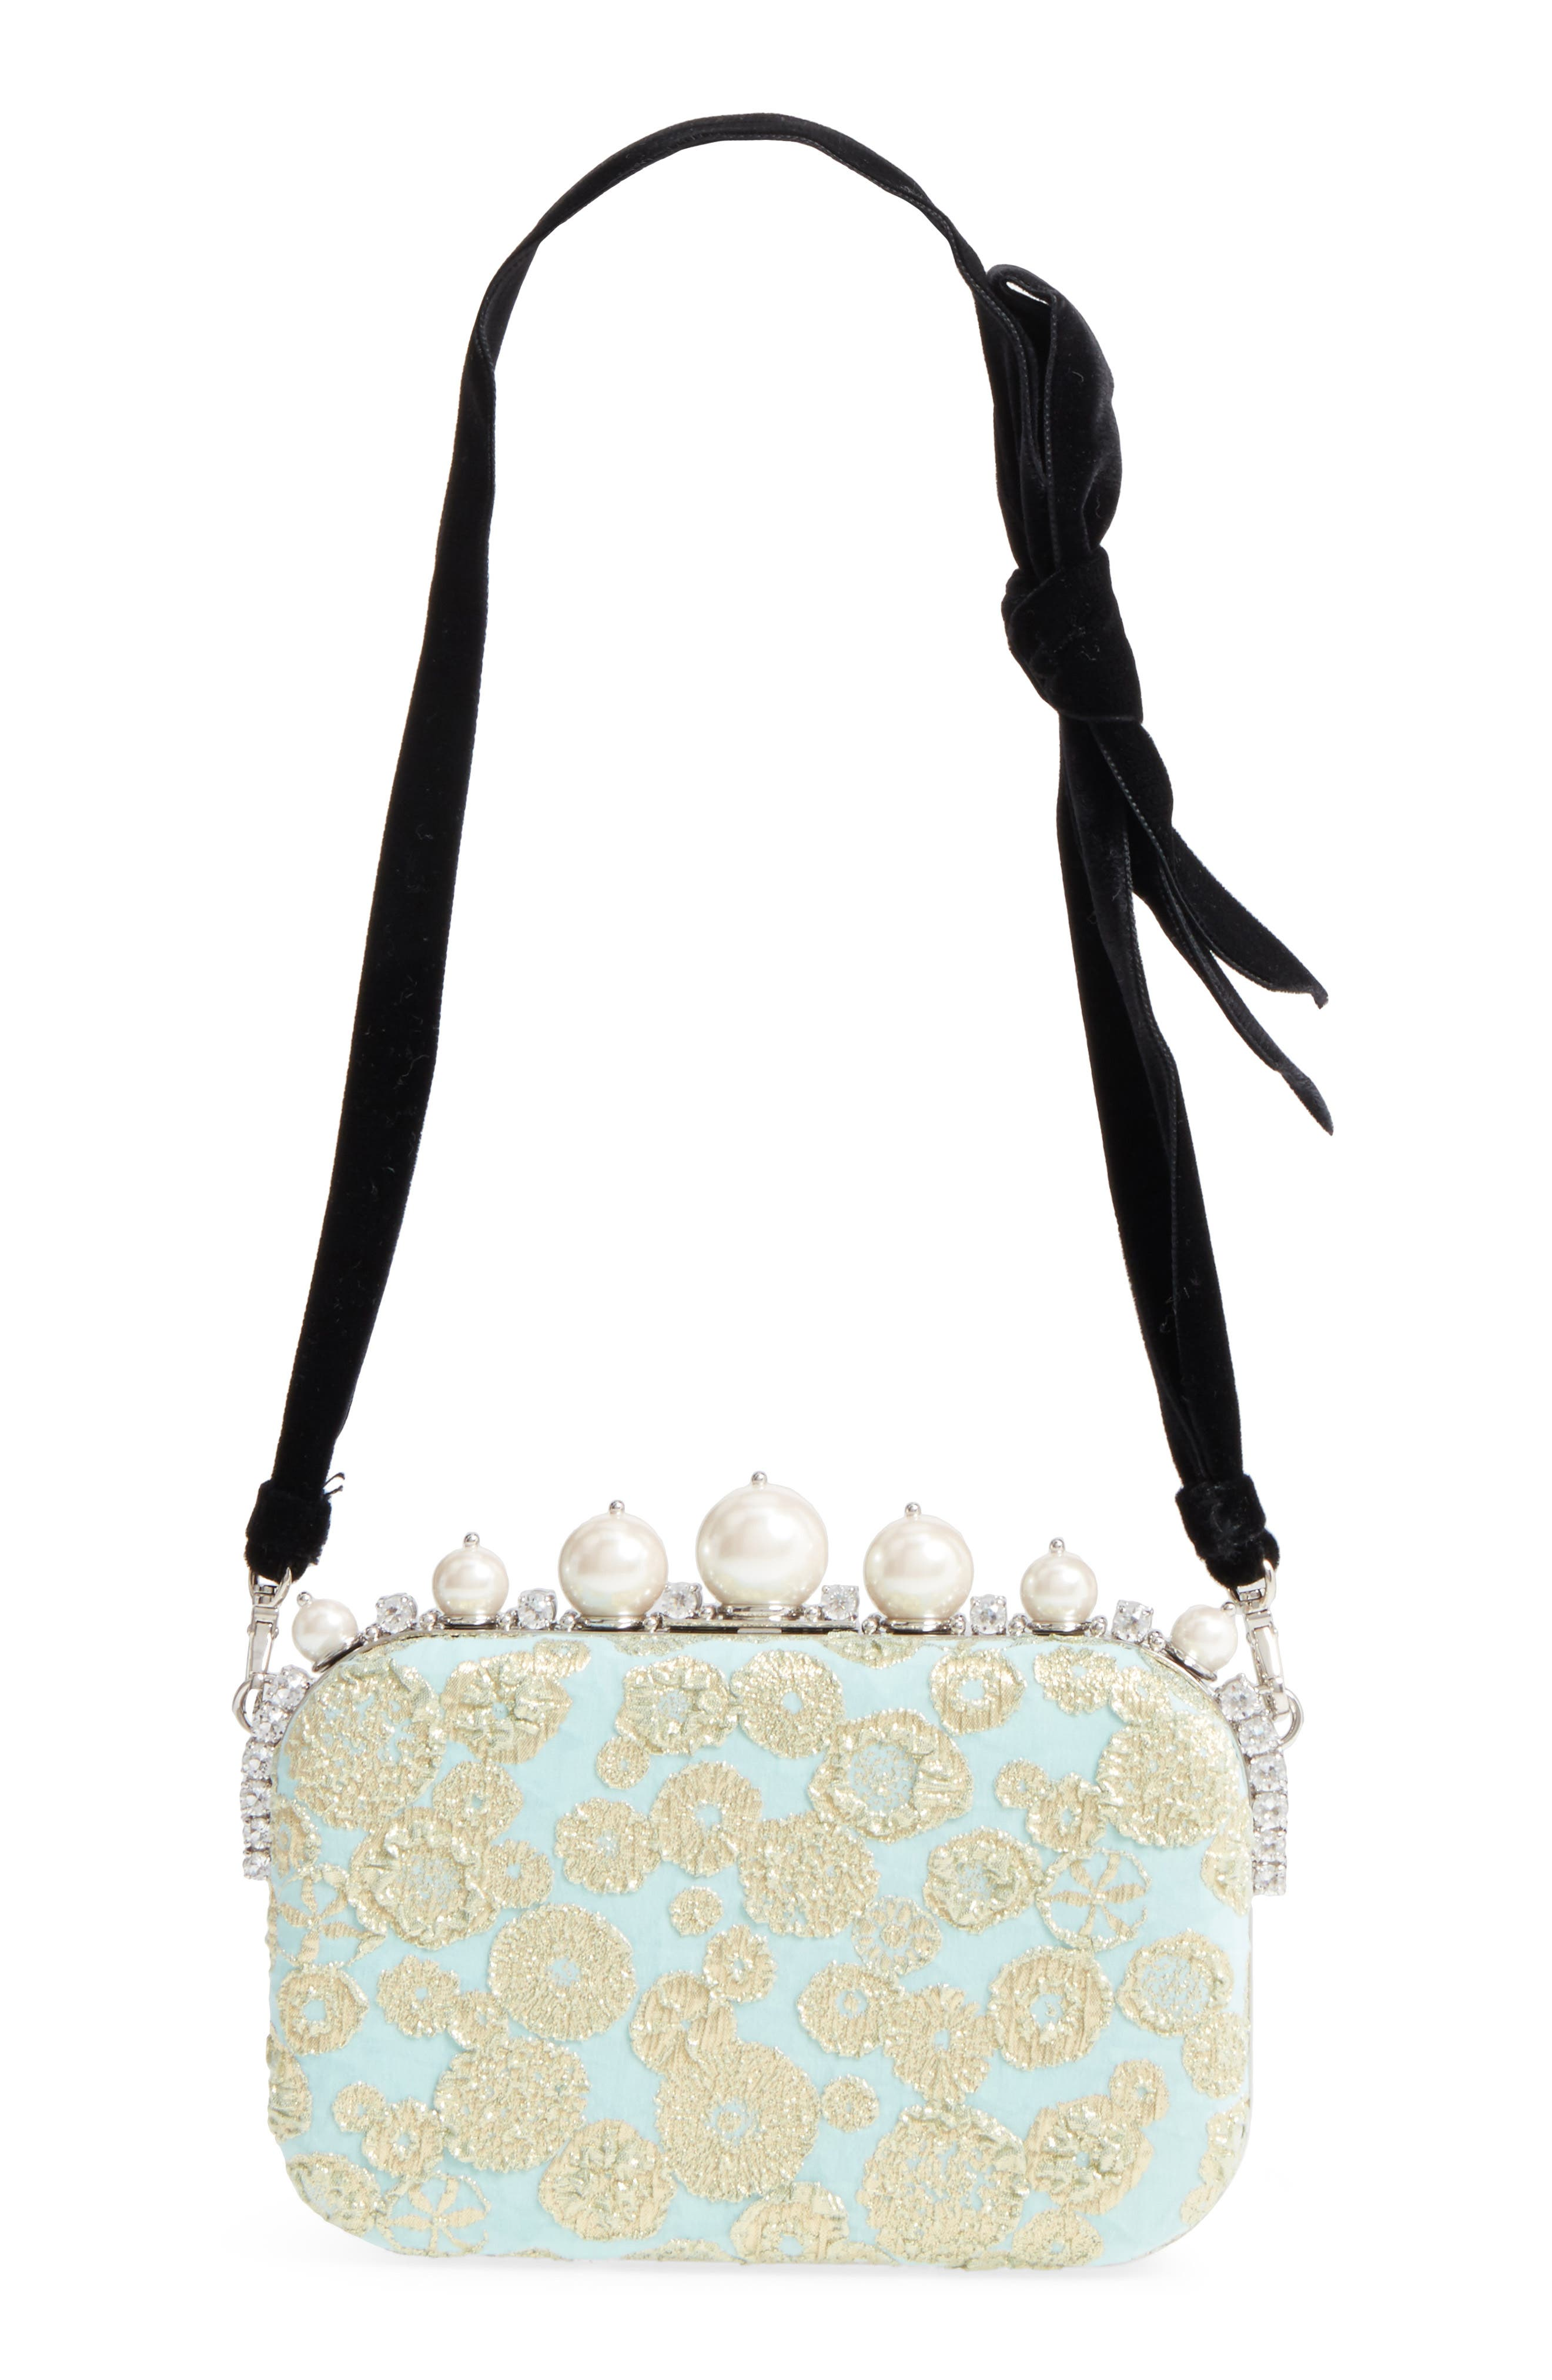 Imitation Pearl & Metallic Brocade Shoulder Bag,                             Main thumbnail 1, color,                             440